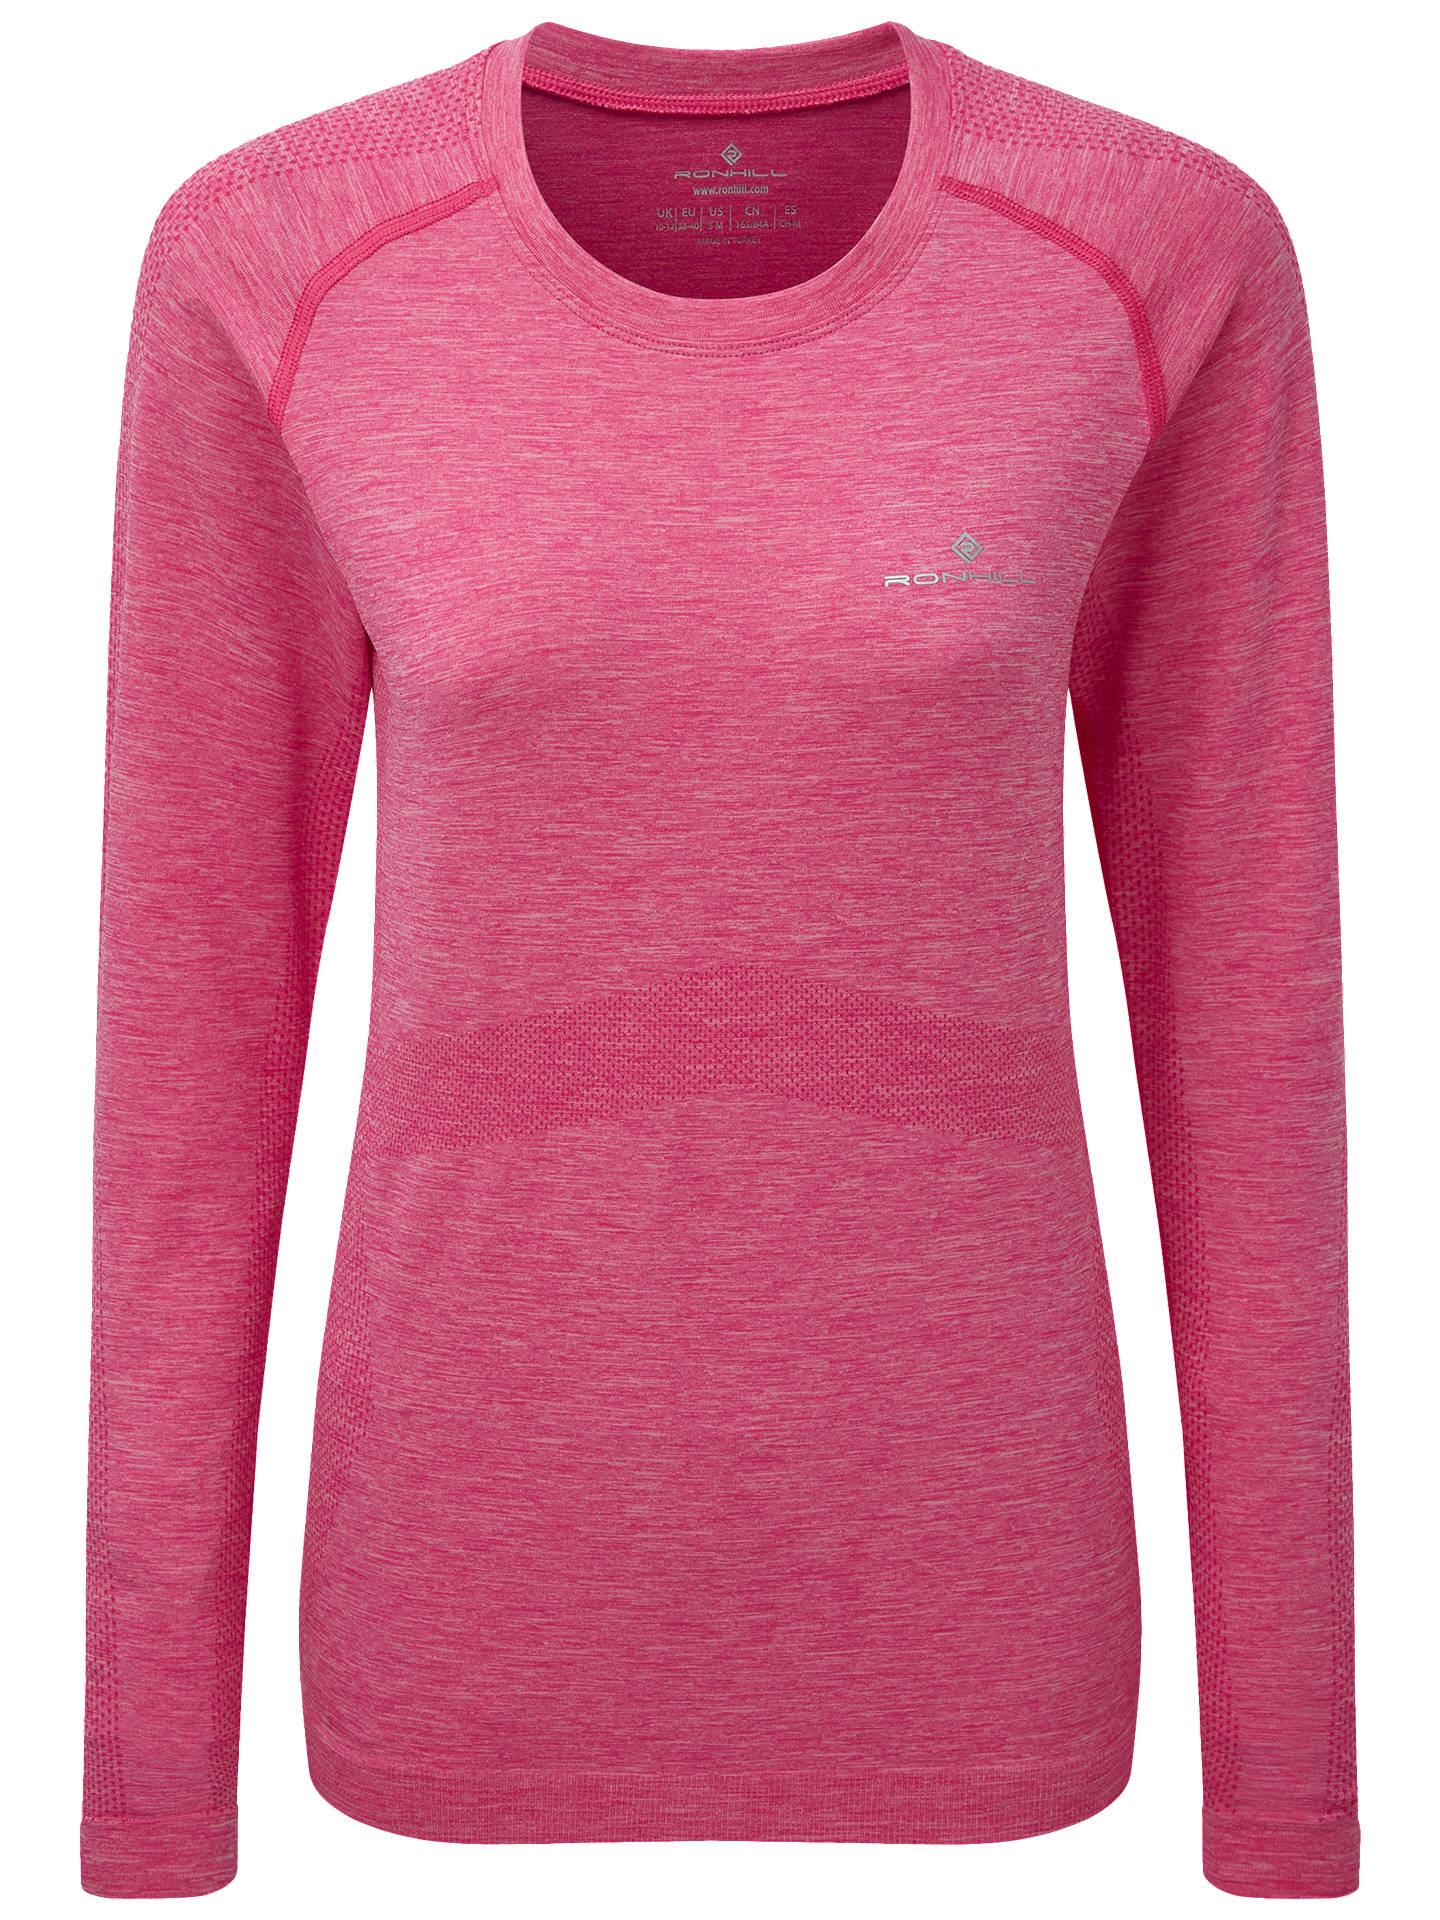 BuyRonhill Marathon Long Sleeve Running Top, Azalea Marl, 14-16 Online at johnlewis.com